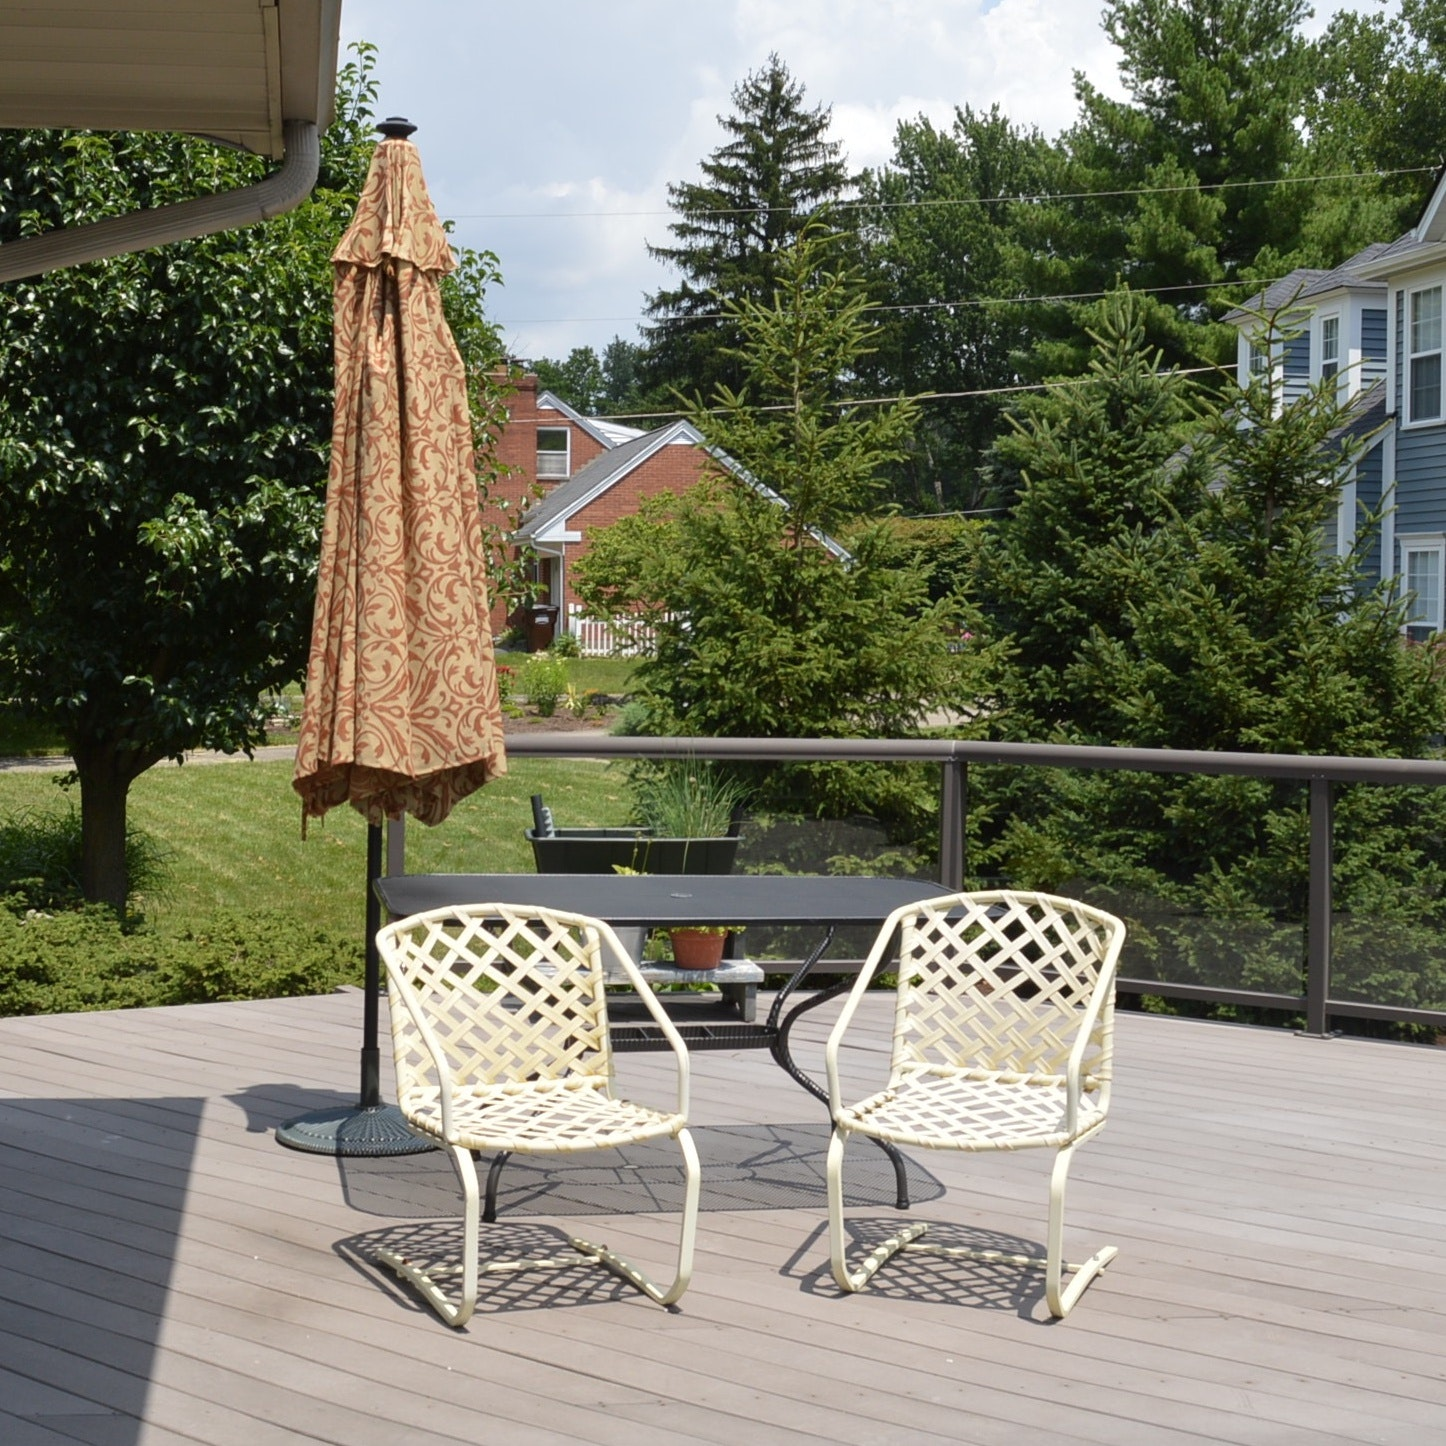 Patio Table, Umbrella with Stand and Two Chairs